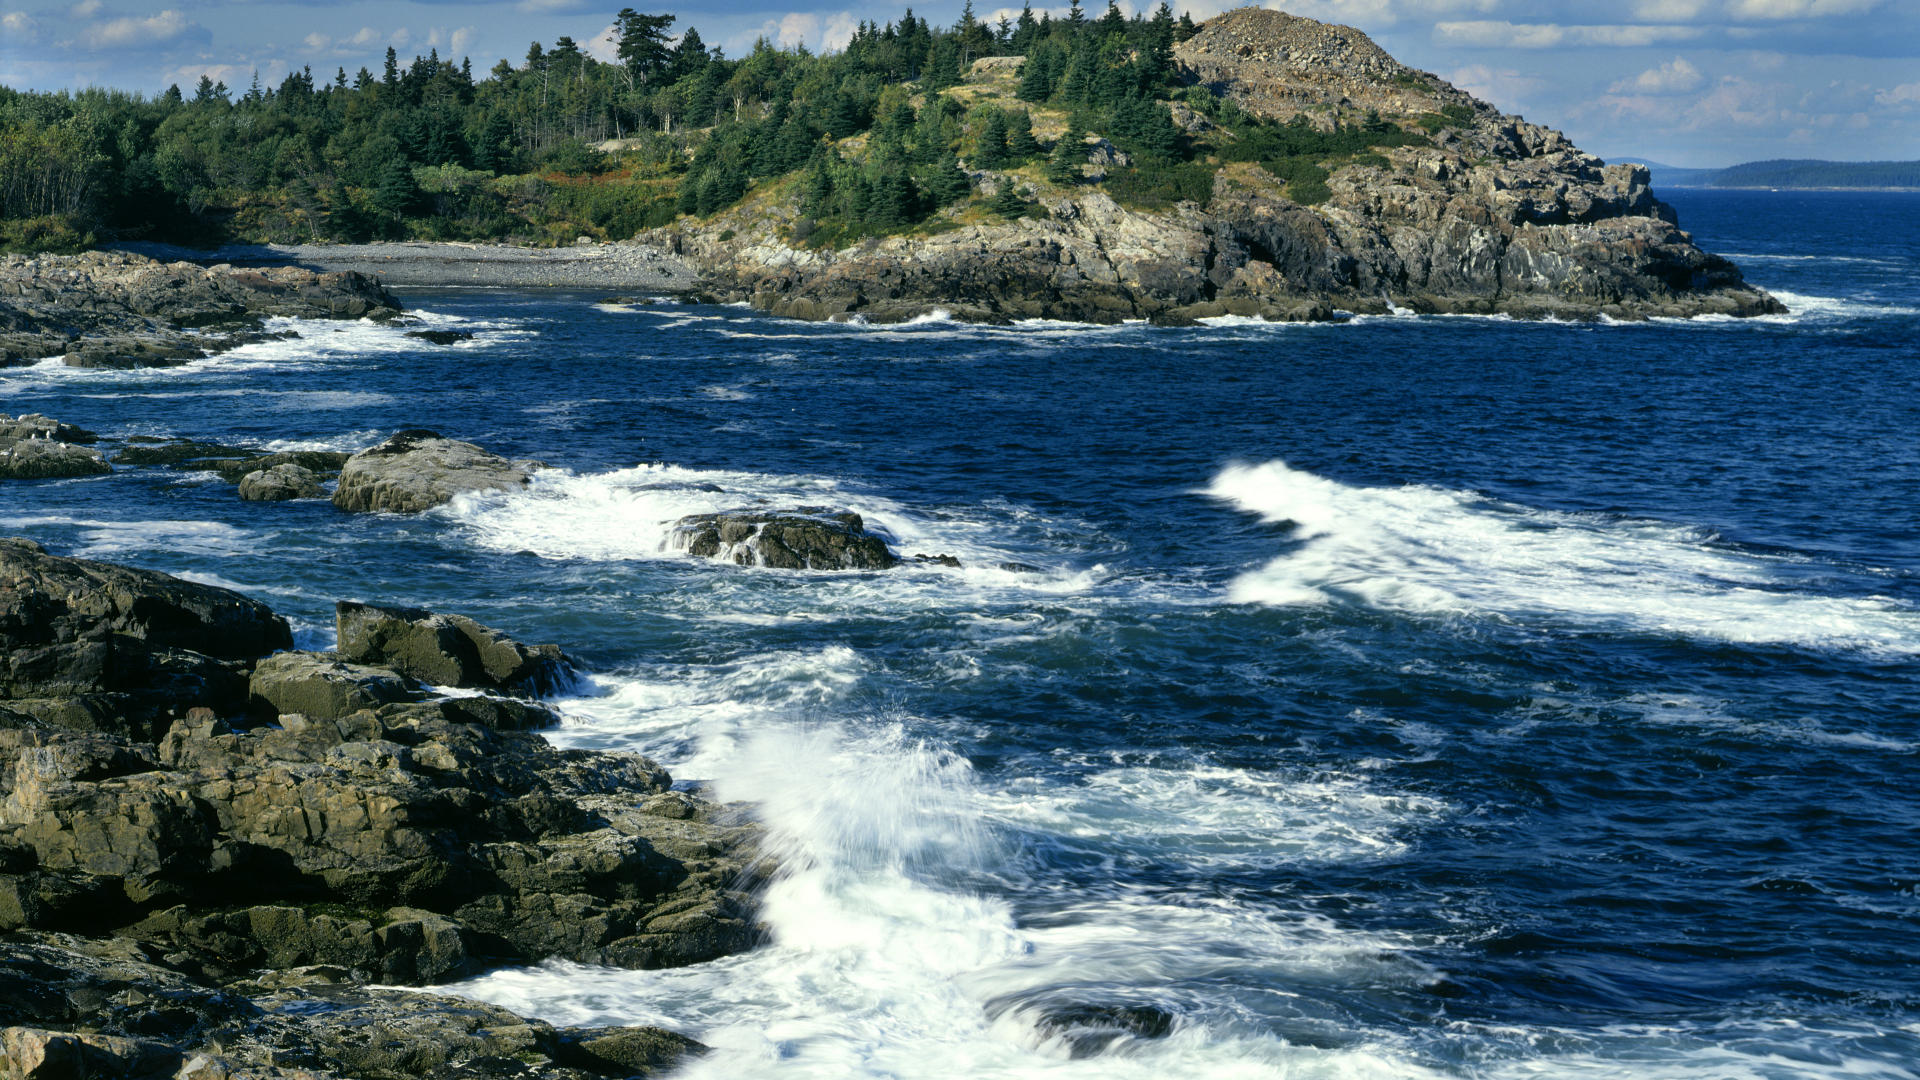 Maine National Park Wallpaper iBackgroundWallpaper 1920x1080